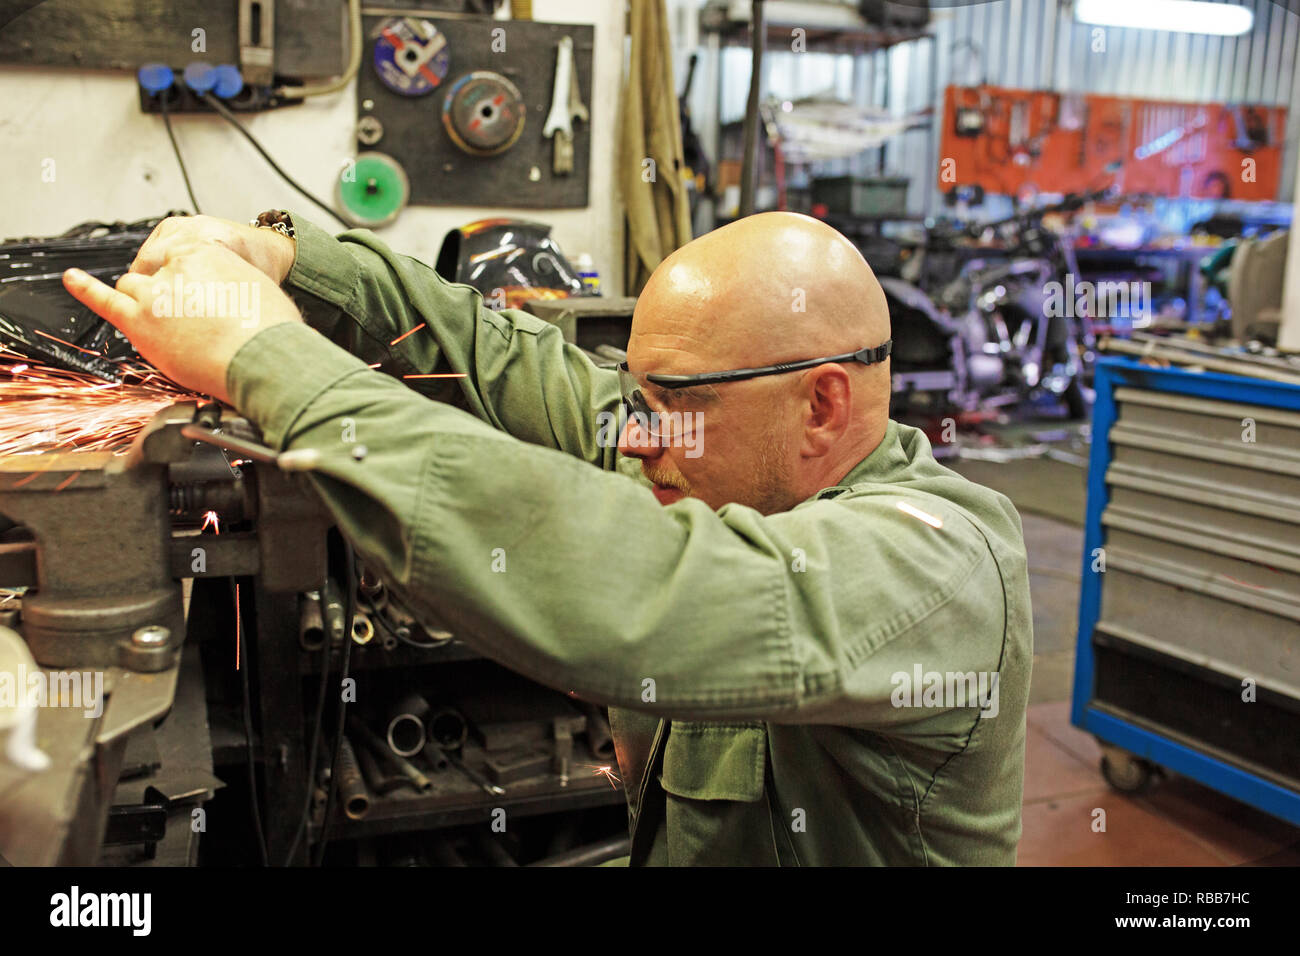 Heavy industry worker cutting steel with angle grinder at car service. - Stock Image